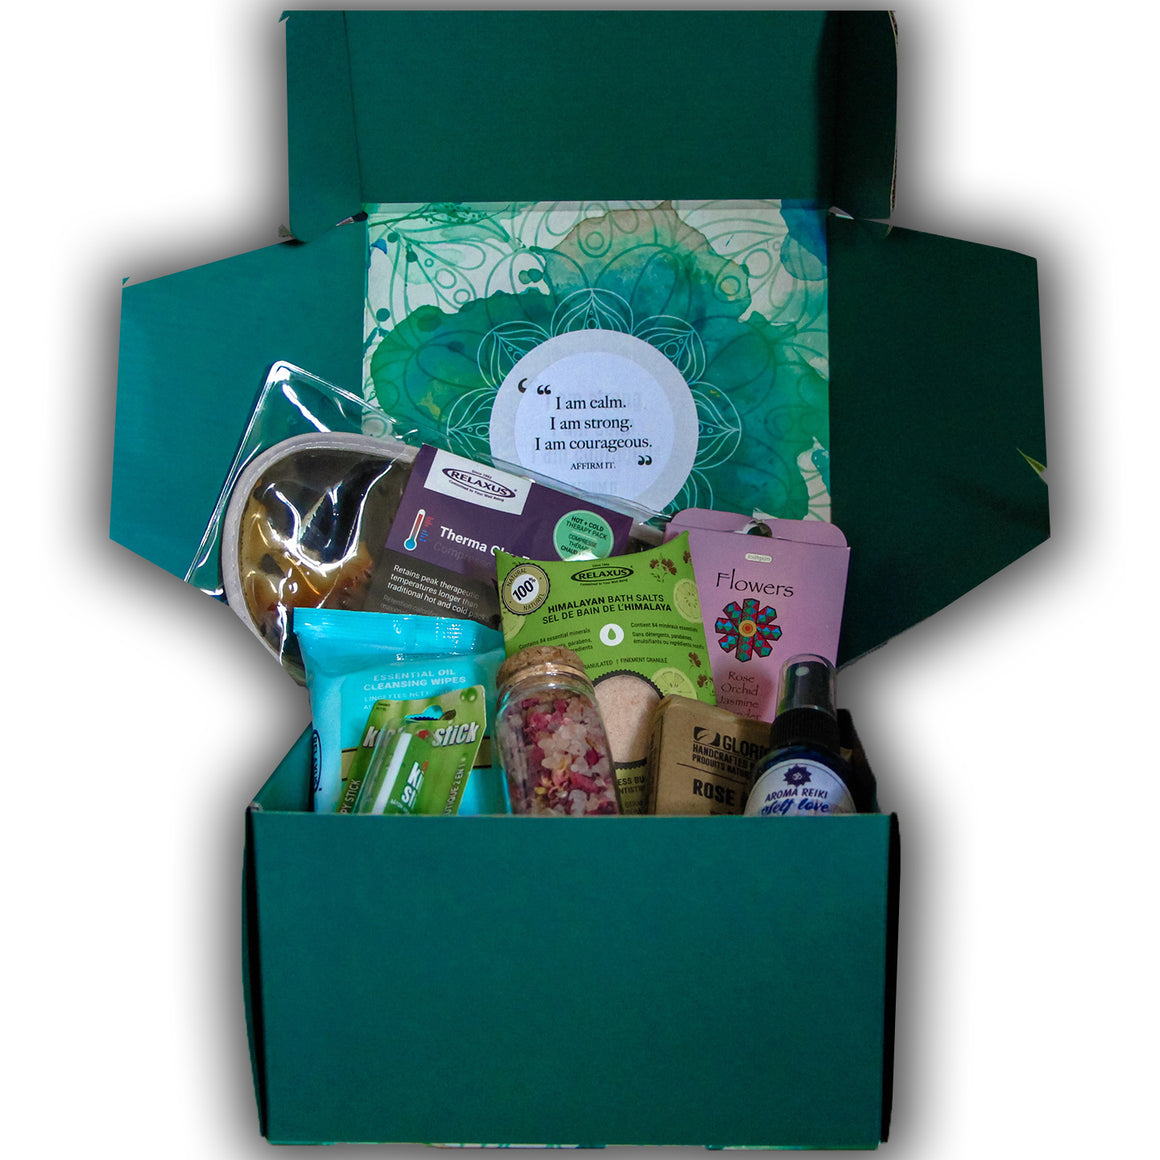 mental health gifts, mental health gift boxes, mental health gift ideas, mental health gift sets, anxiety gift ideas, anxiety gift boxes,